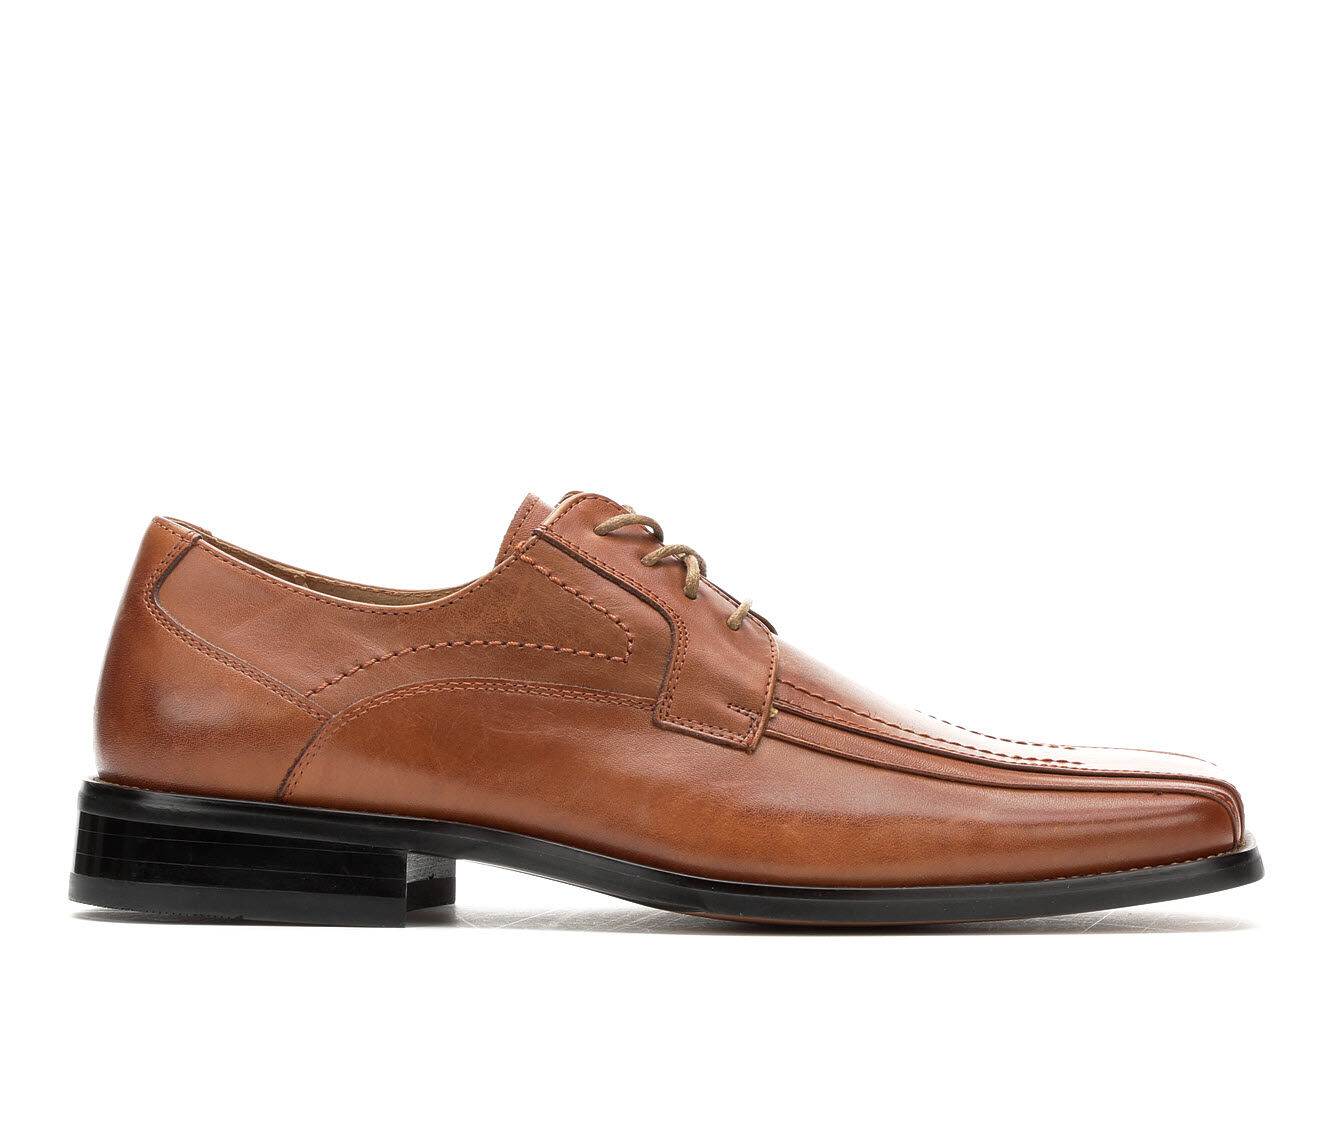 Mens Dress Shoes Stacy Adams Corrado Mens Dress Dress Shoes Under Discount